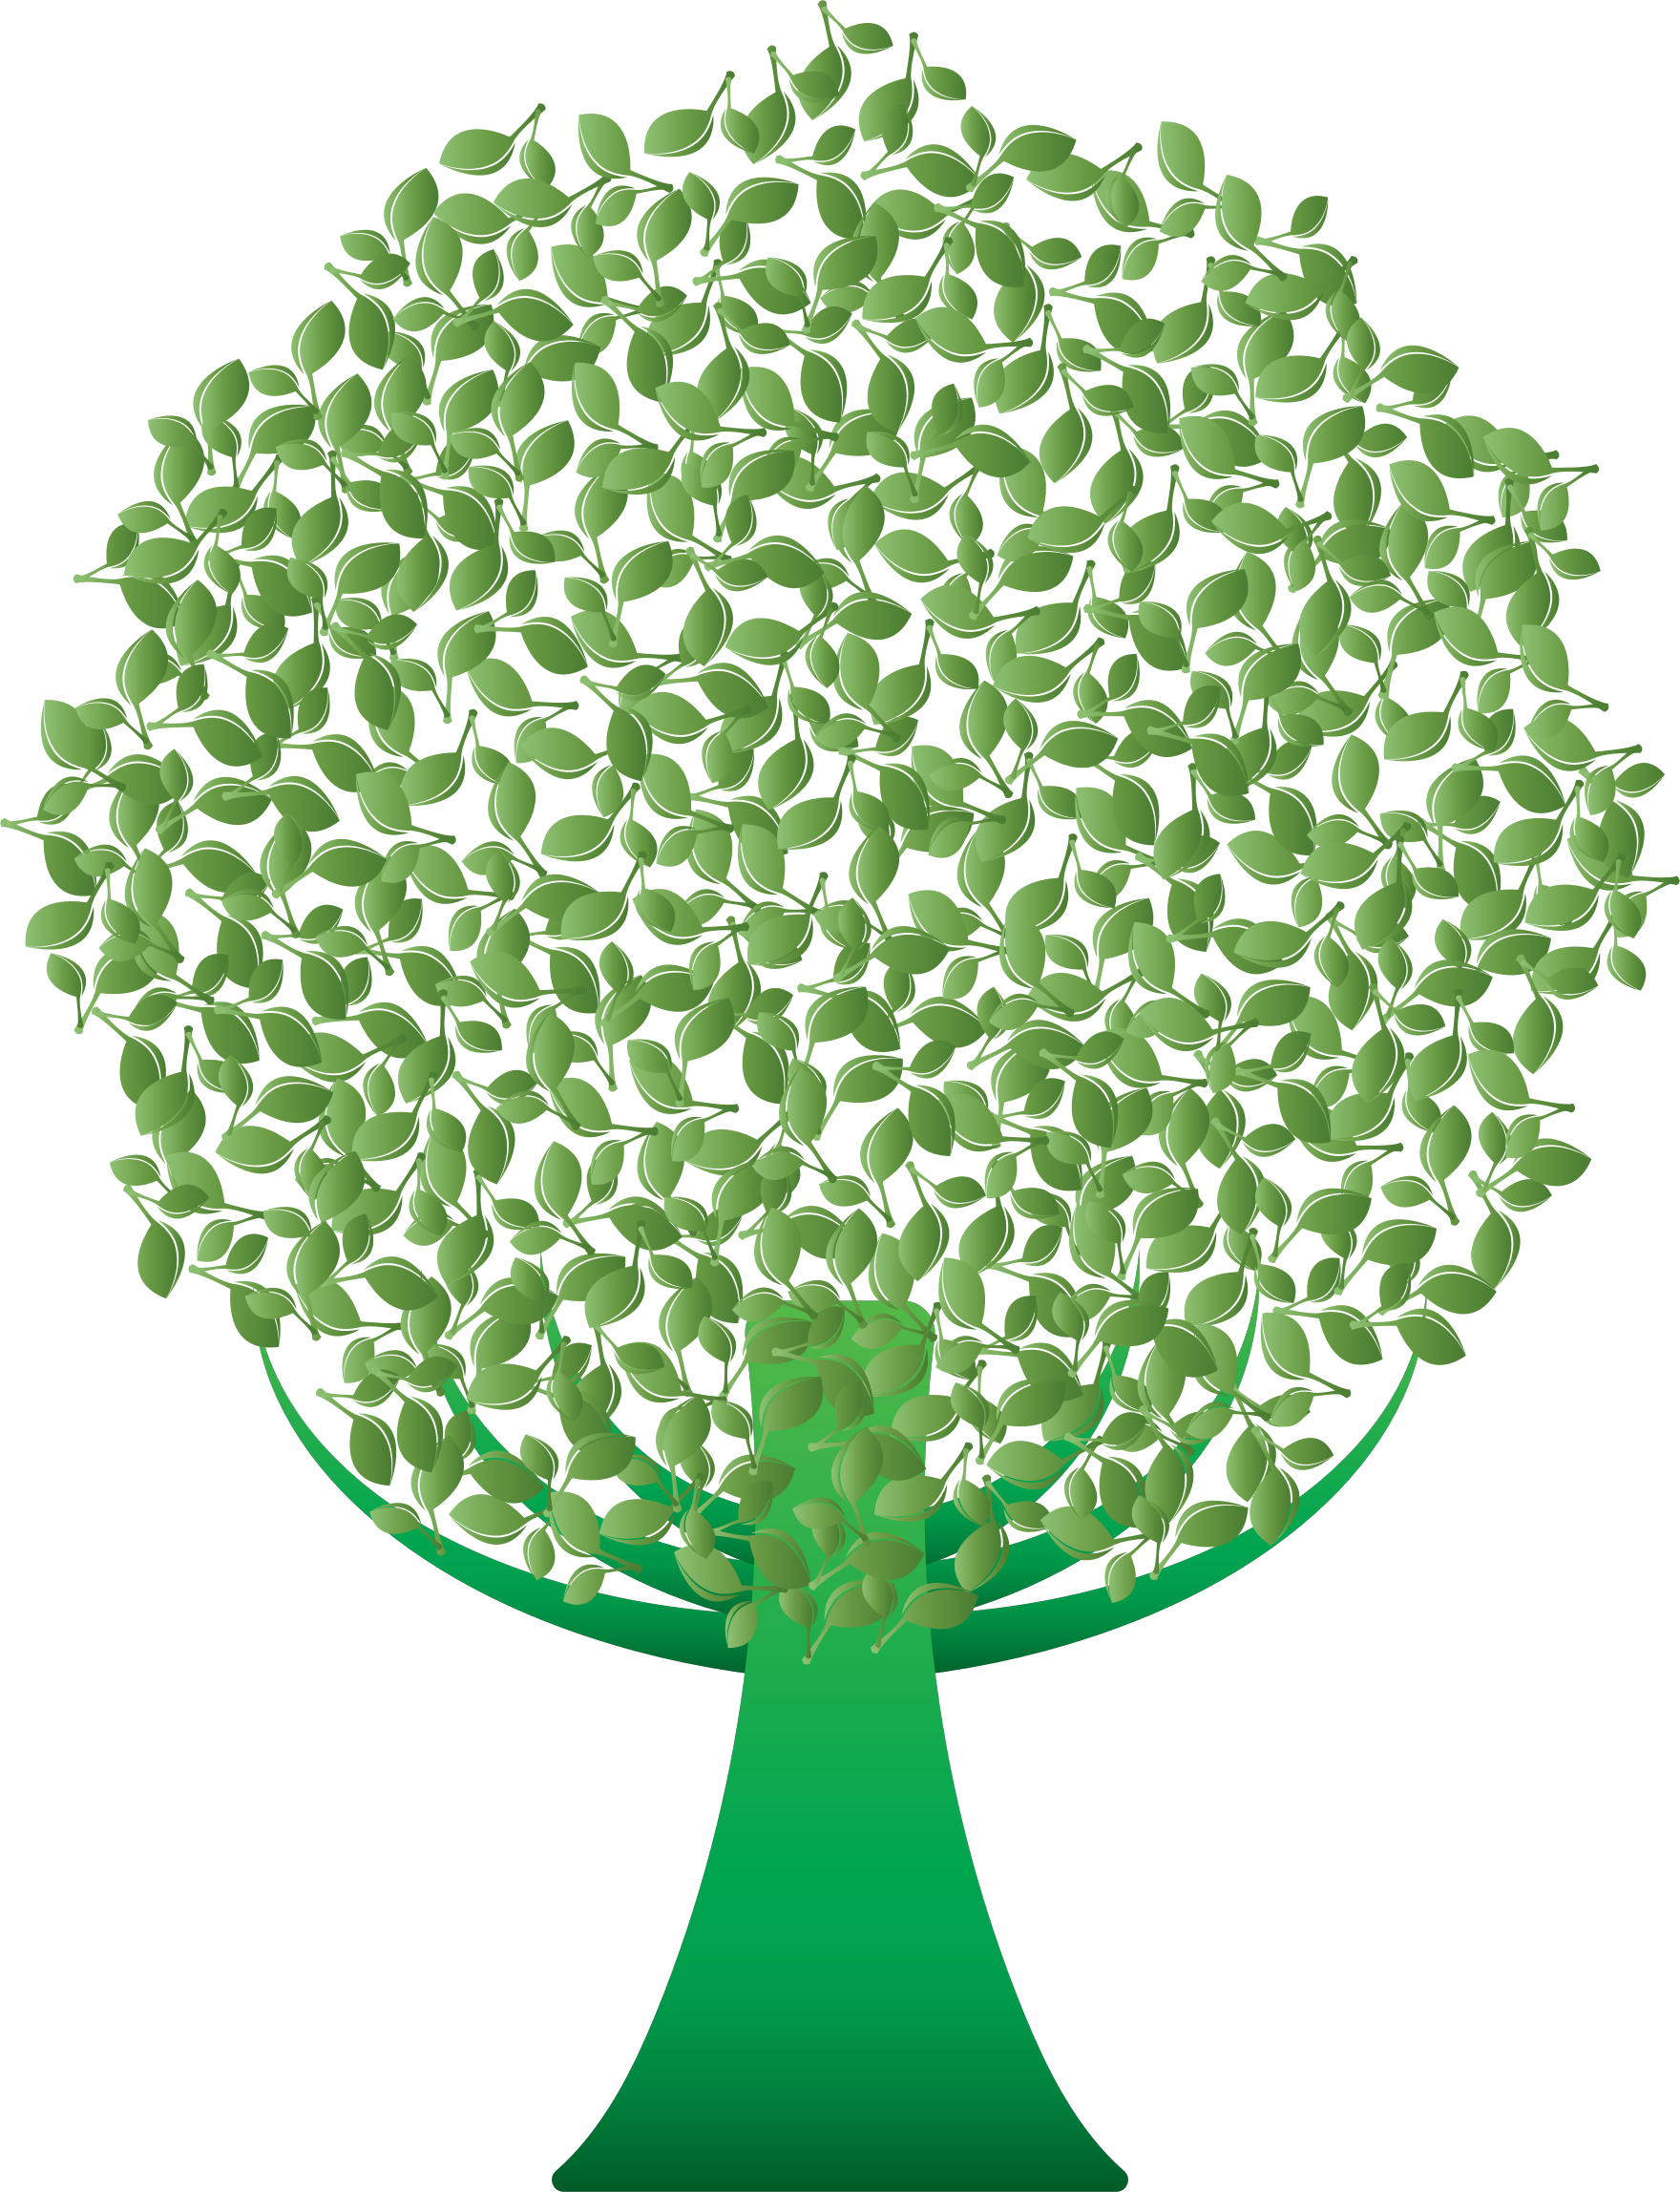 Abstract tree clipart image transparent Clipart - Green Abstract Tree image transparent